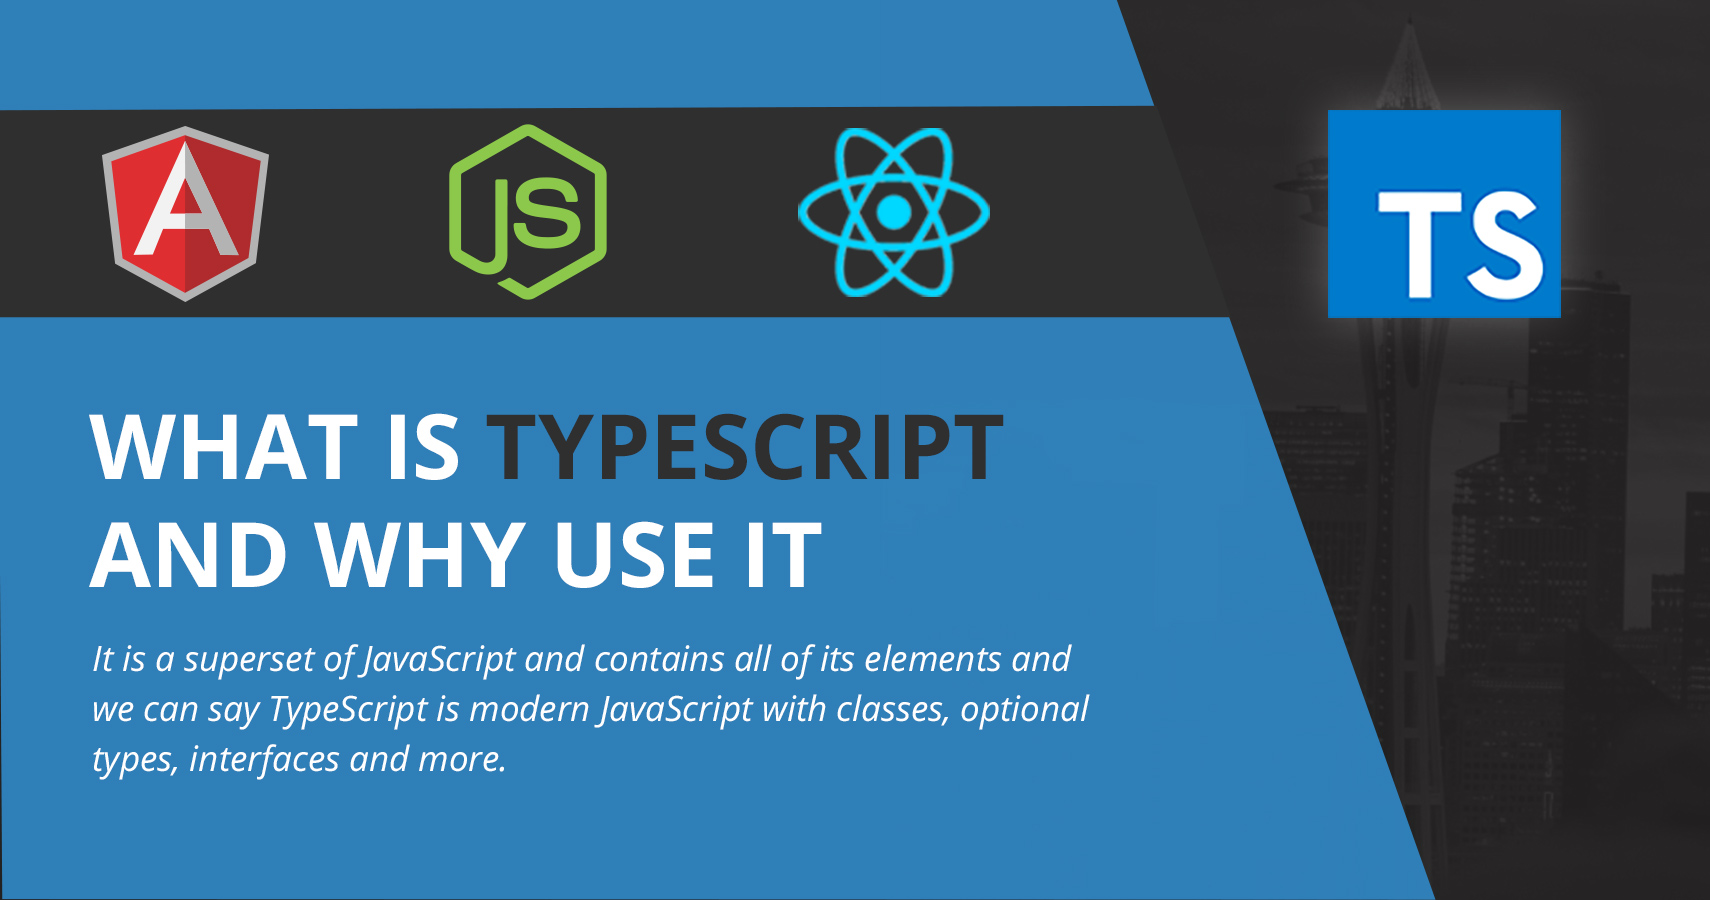 Why use TypeScript in 2018 in Web Application